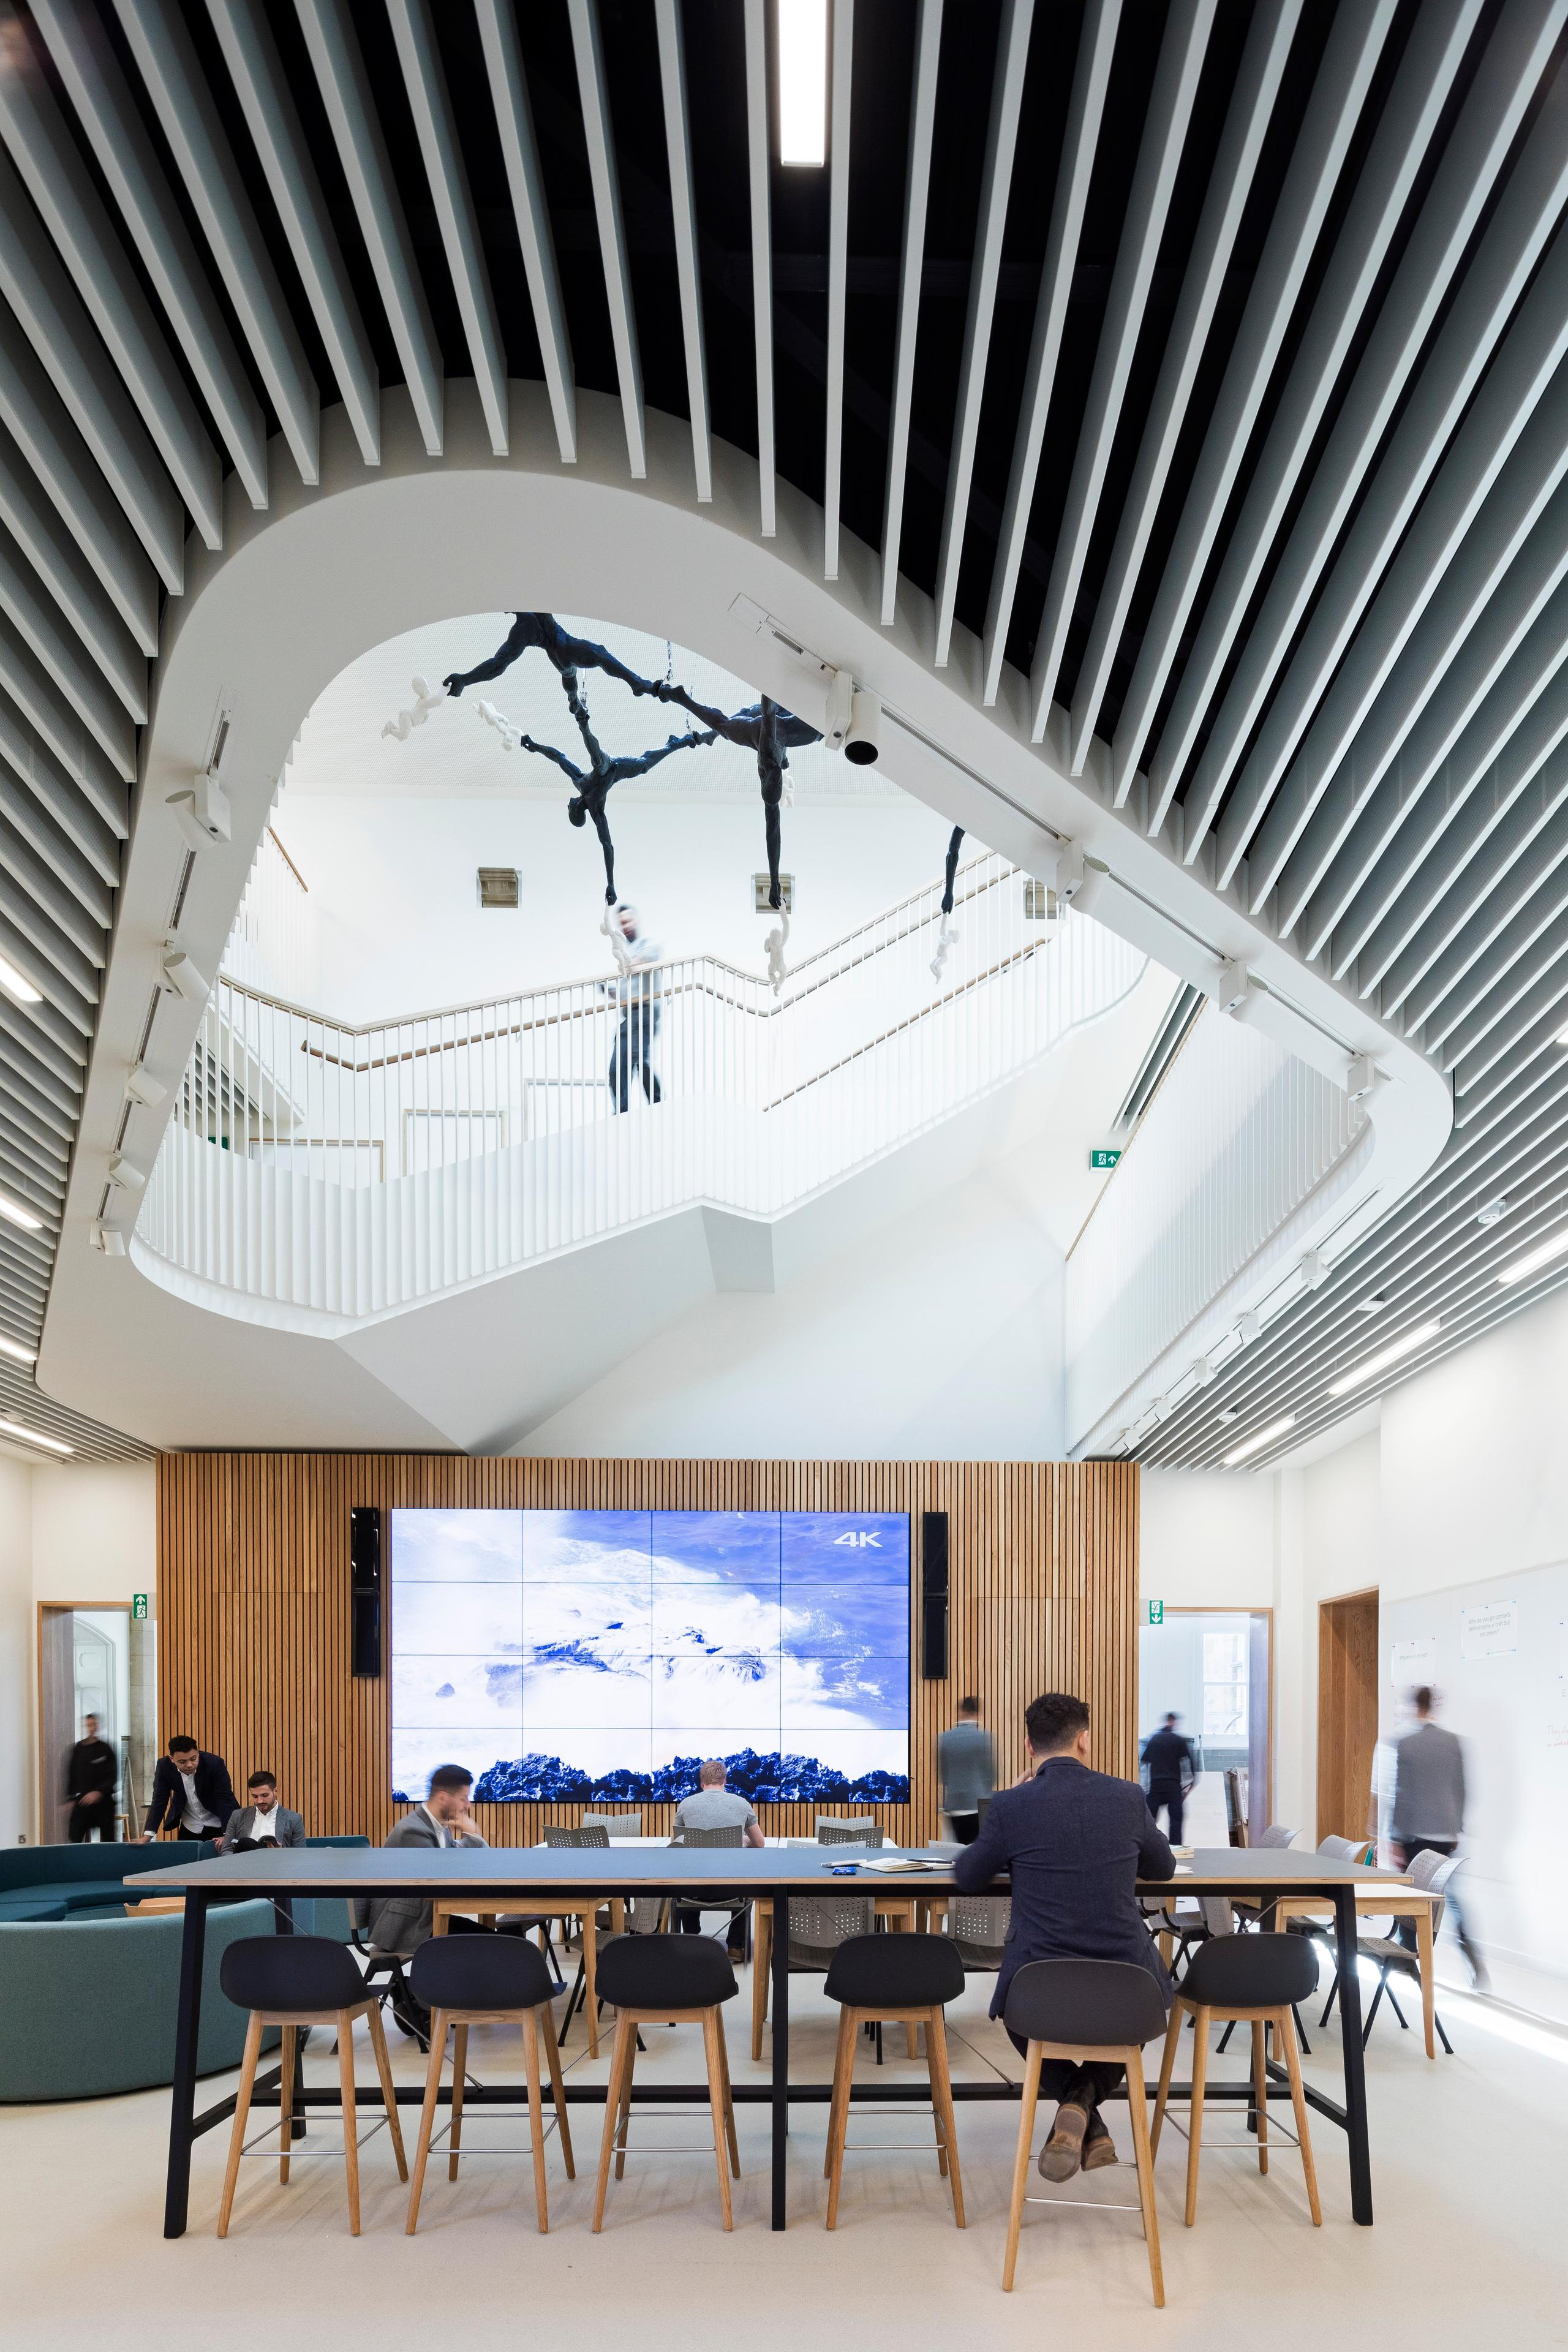 lobby of Barton Science Centre, with a mix of seating options, a flatscreen on a wood wall, and the upper storeys visible above in a round atrium cut out in the ceiling